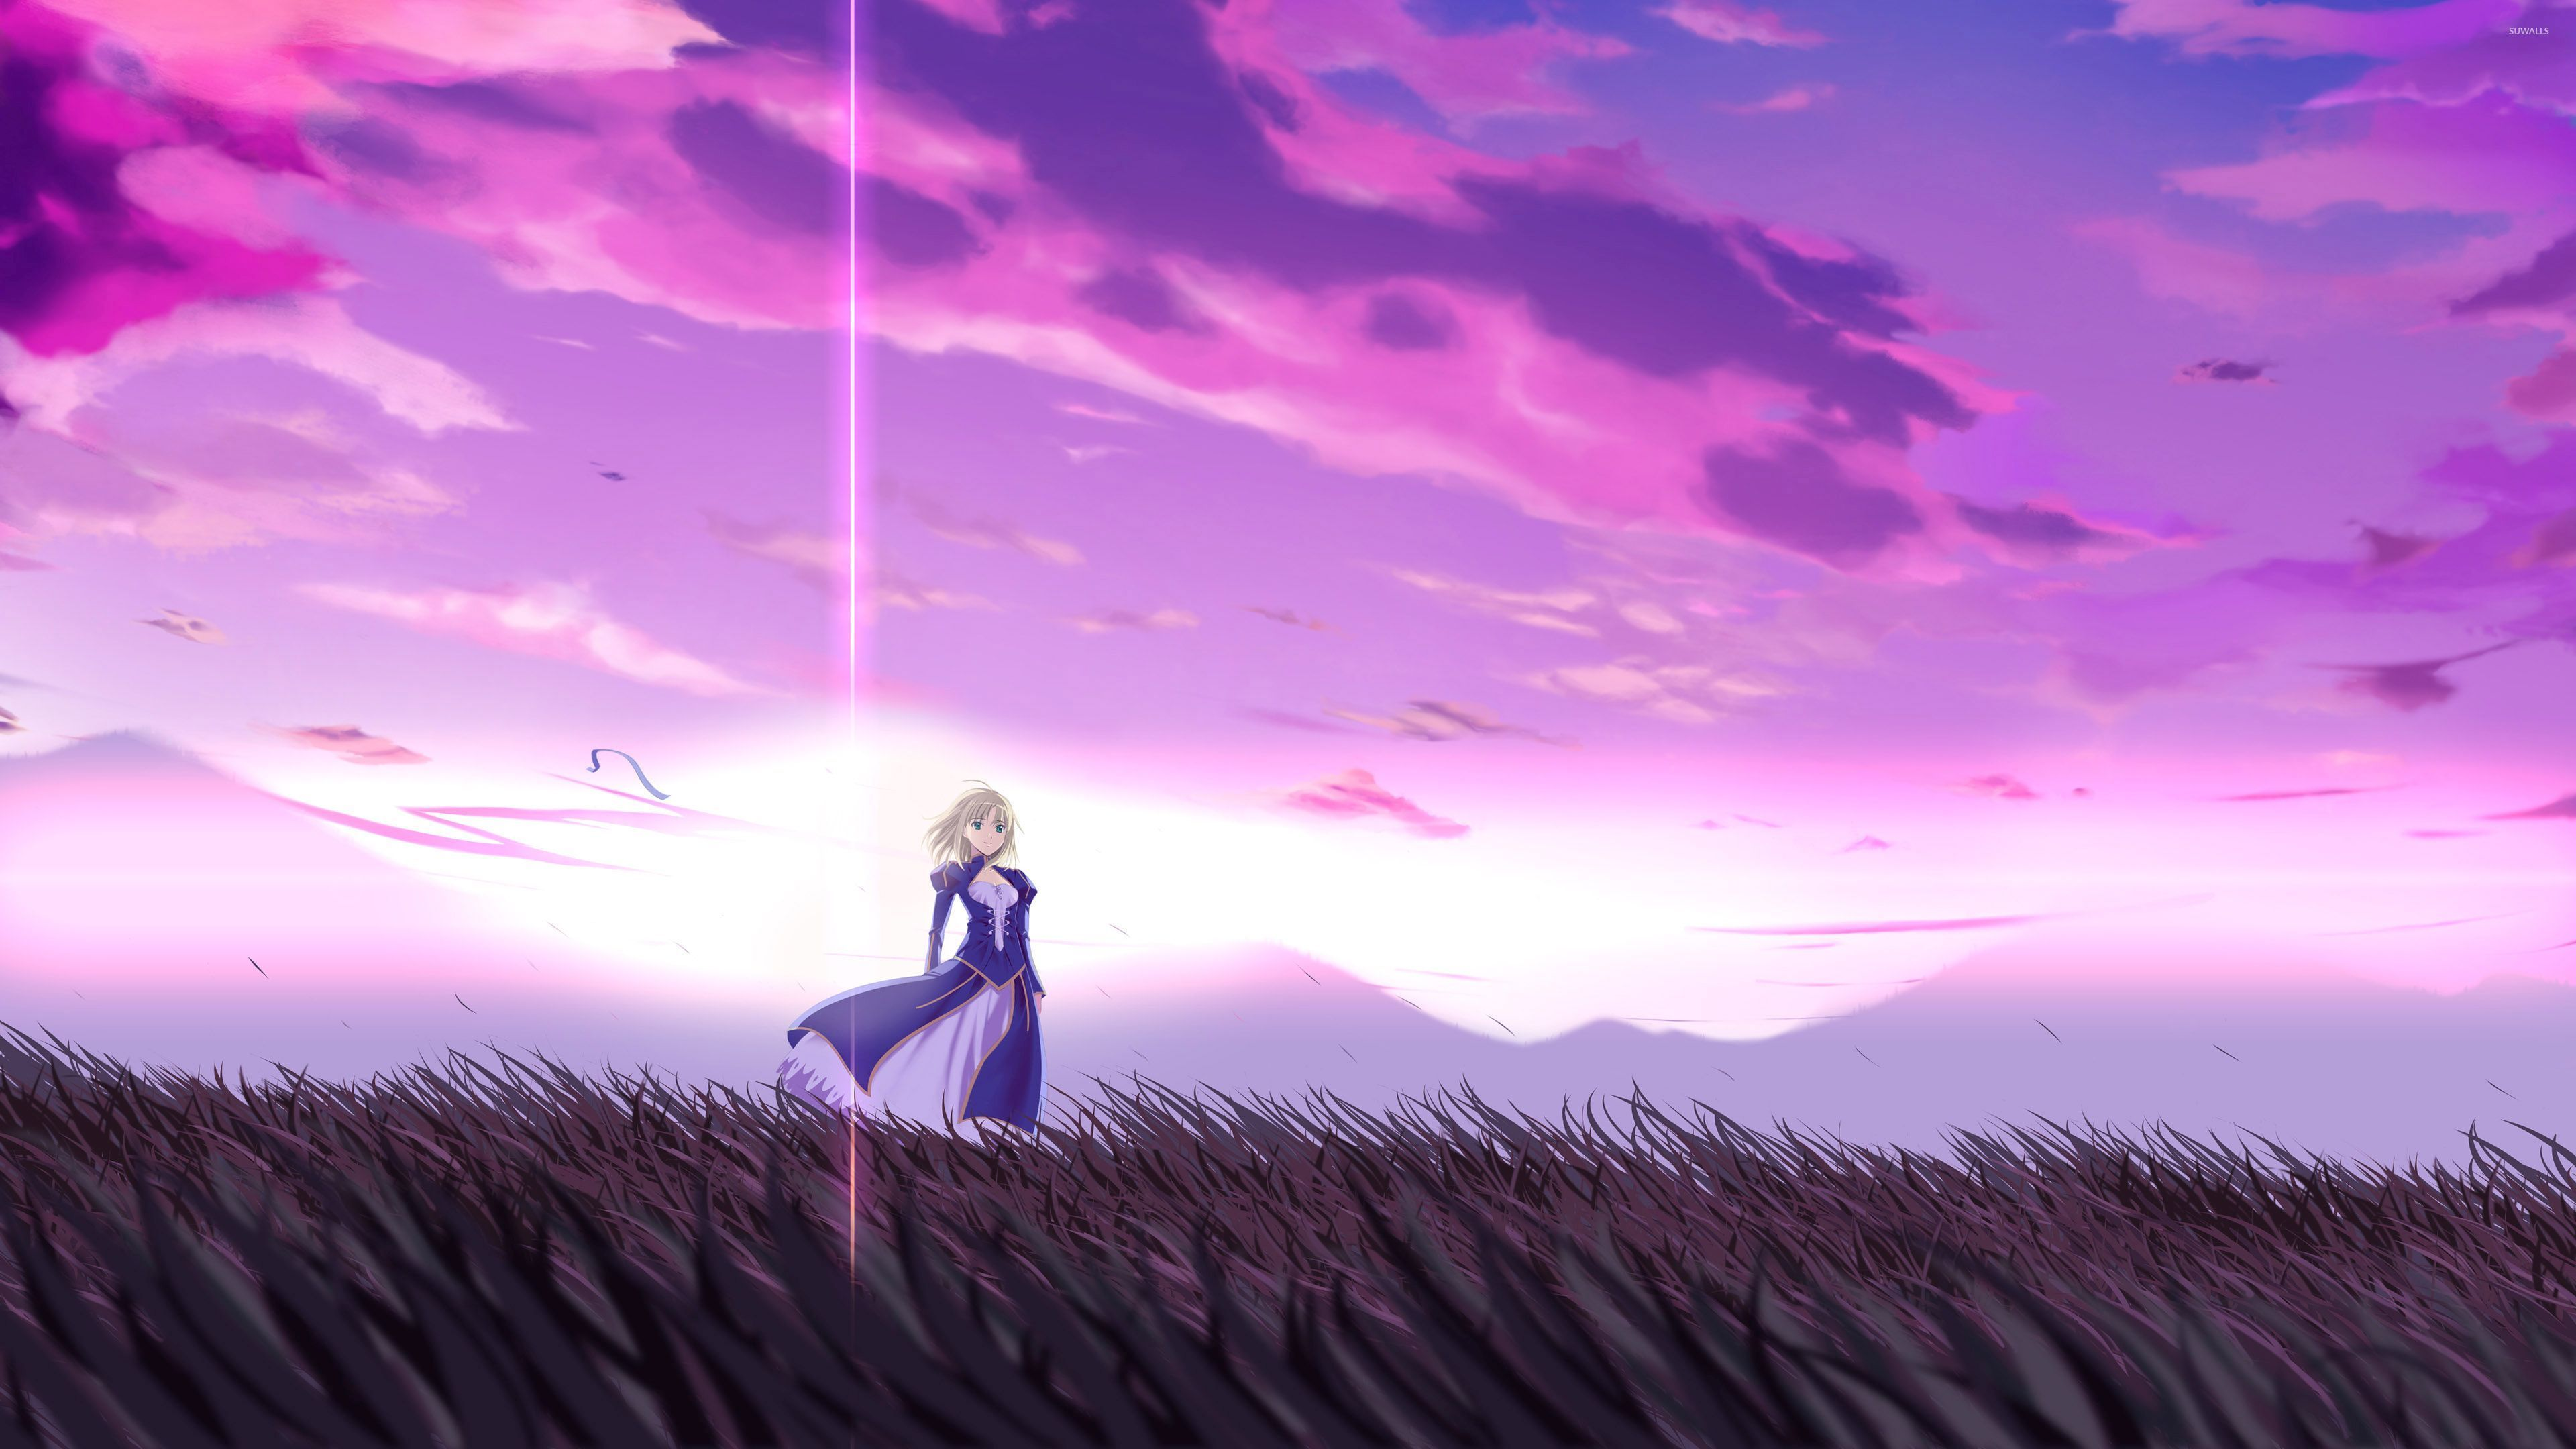 Saber Fate Stay Night 8 Wallpaper Anime Wallpapers 32735